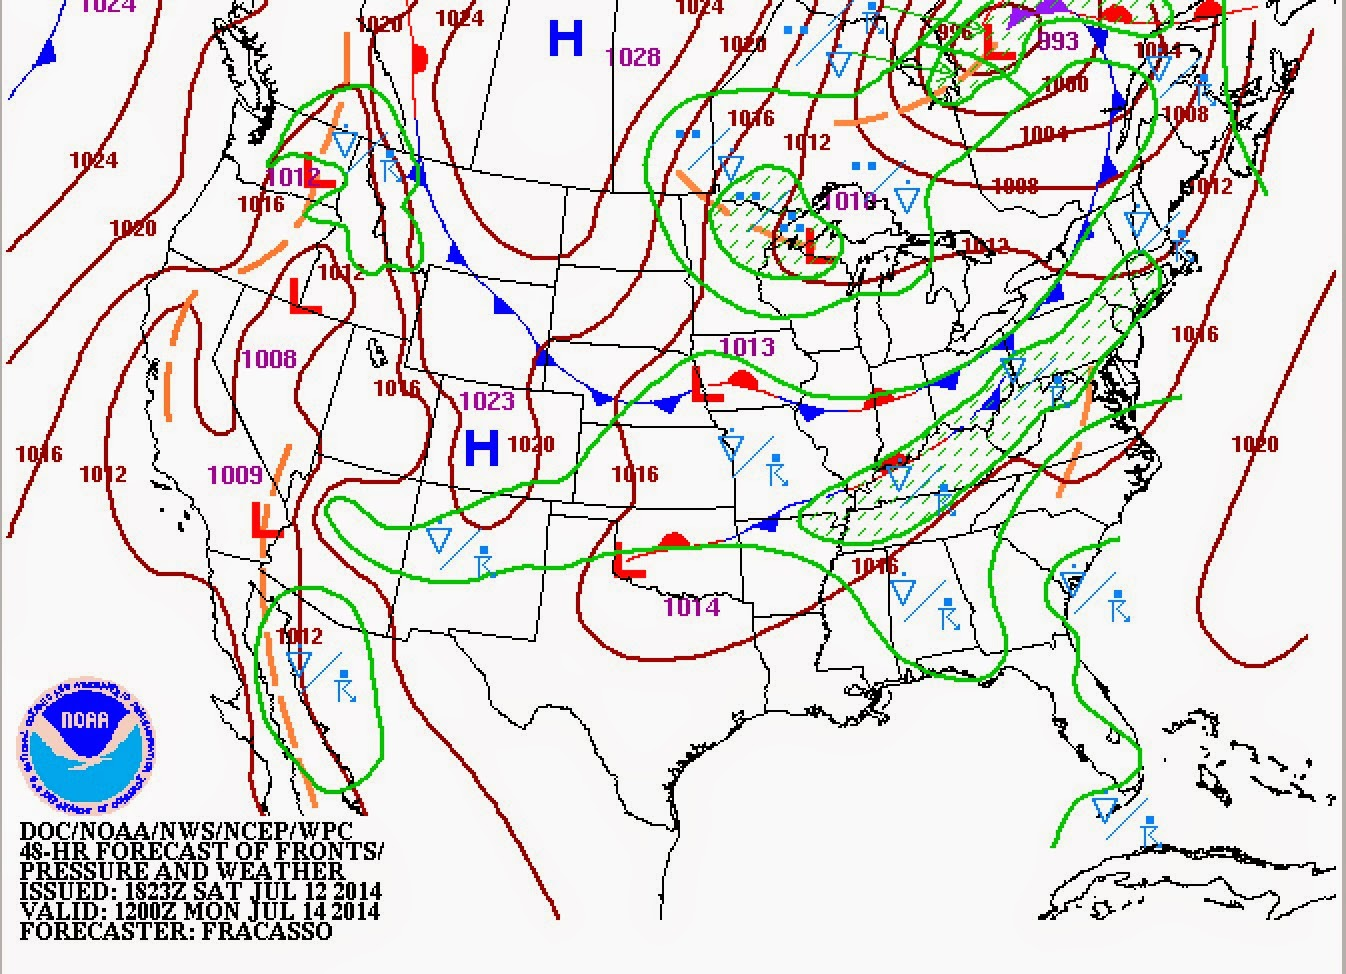 frontal boundary precipitation approximately 8am in northwest nj a bit later for central southern nj times may change prior to monday 7 14 14